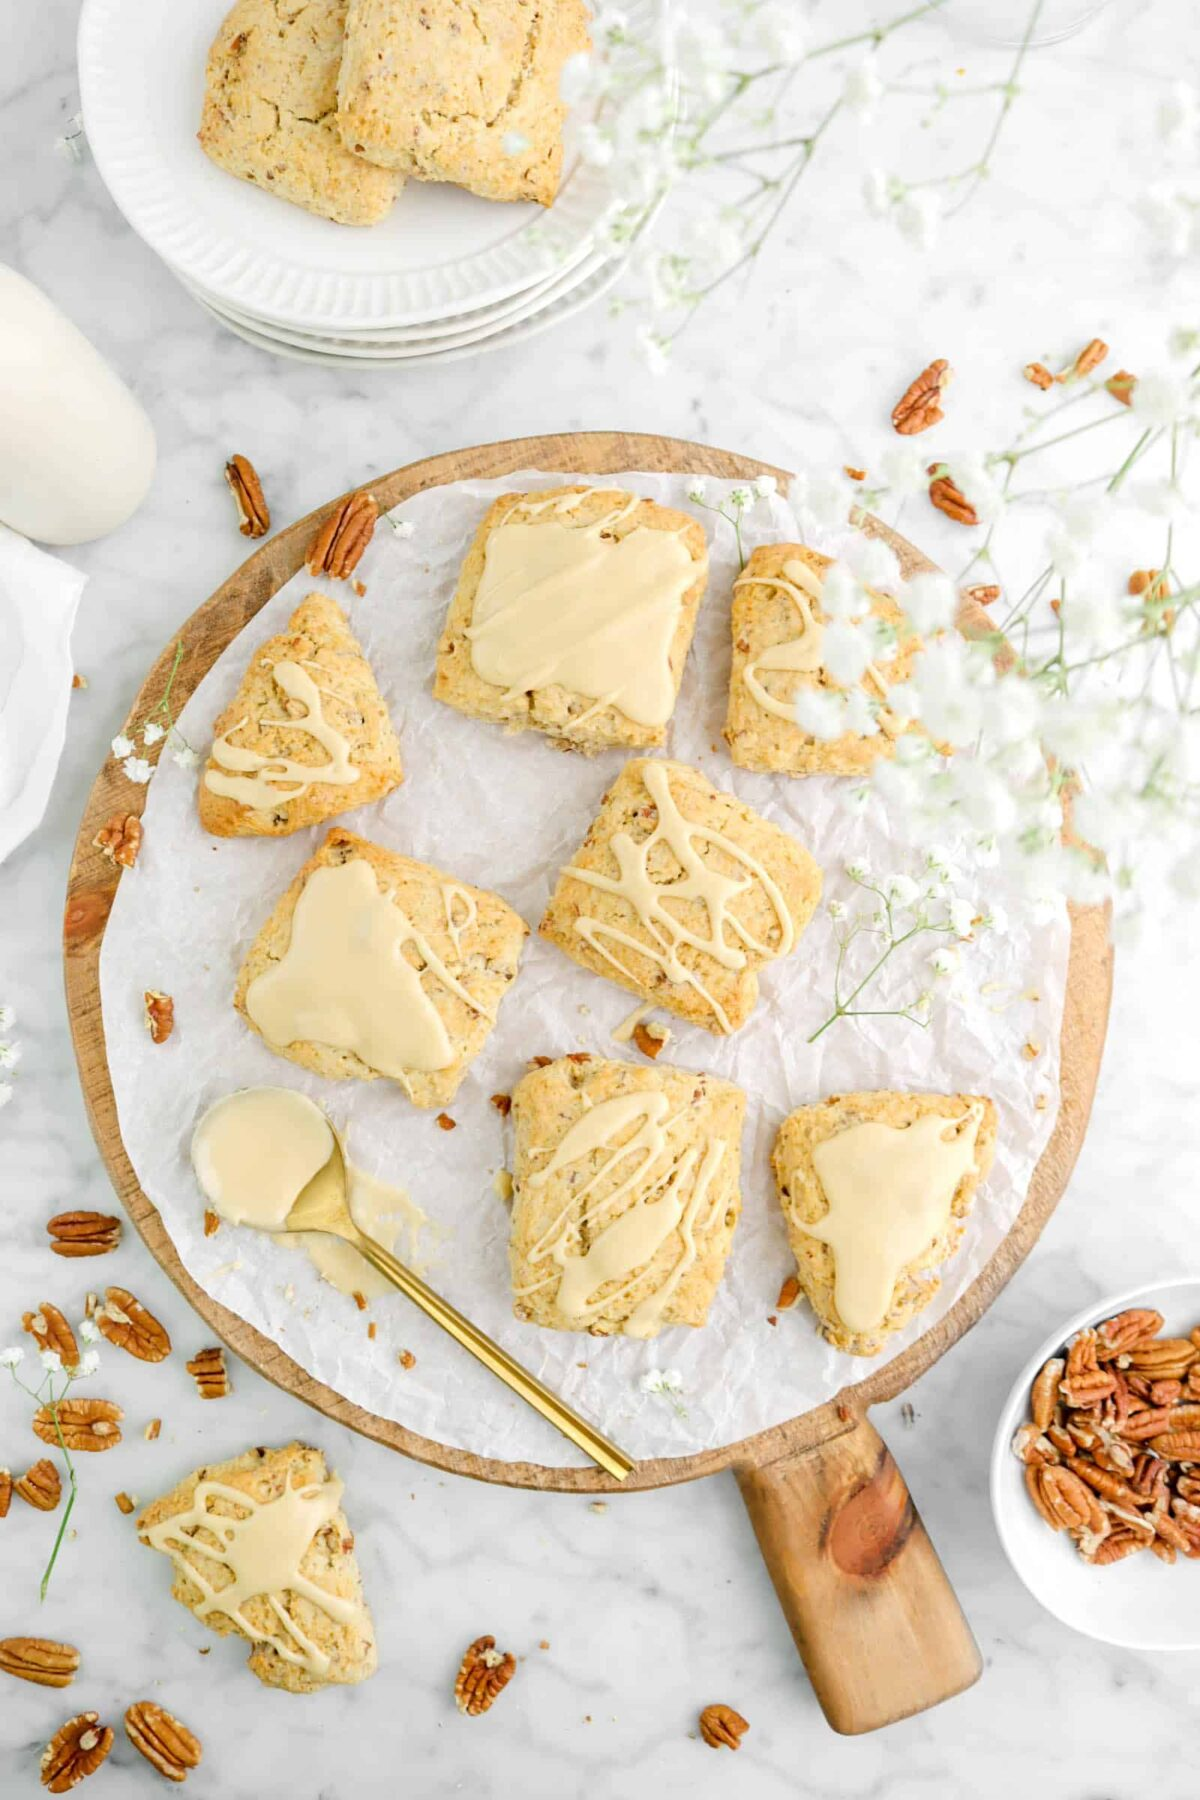 scones on wood serving board with flowers above, a gold spoon with icing and whole pecans scattered around